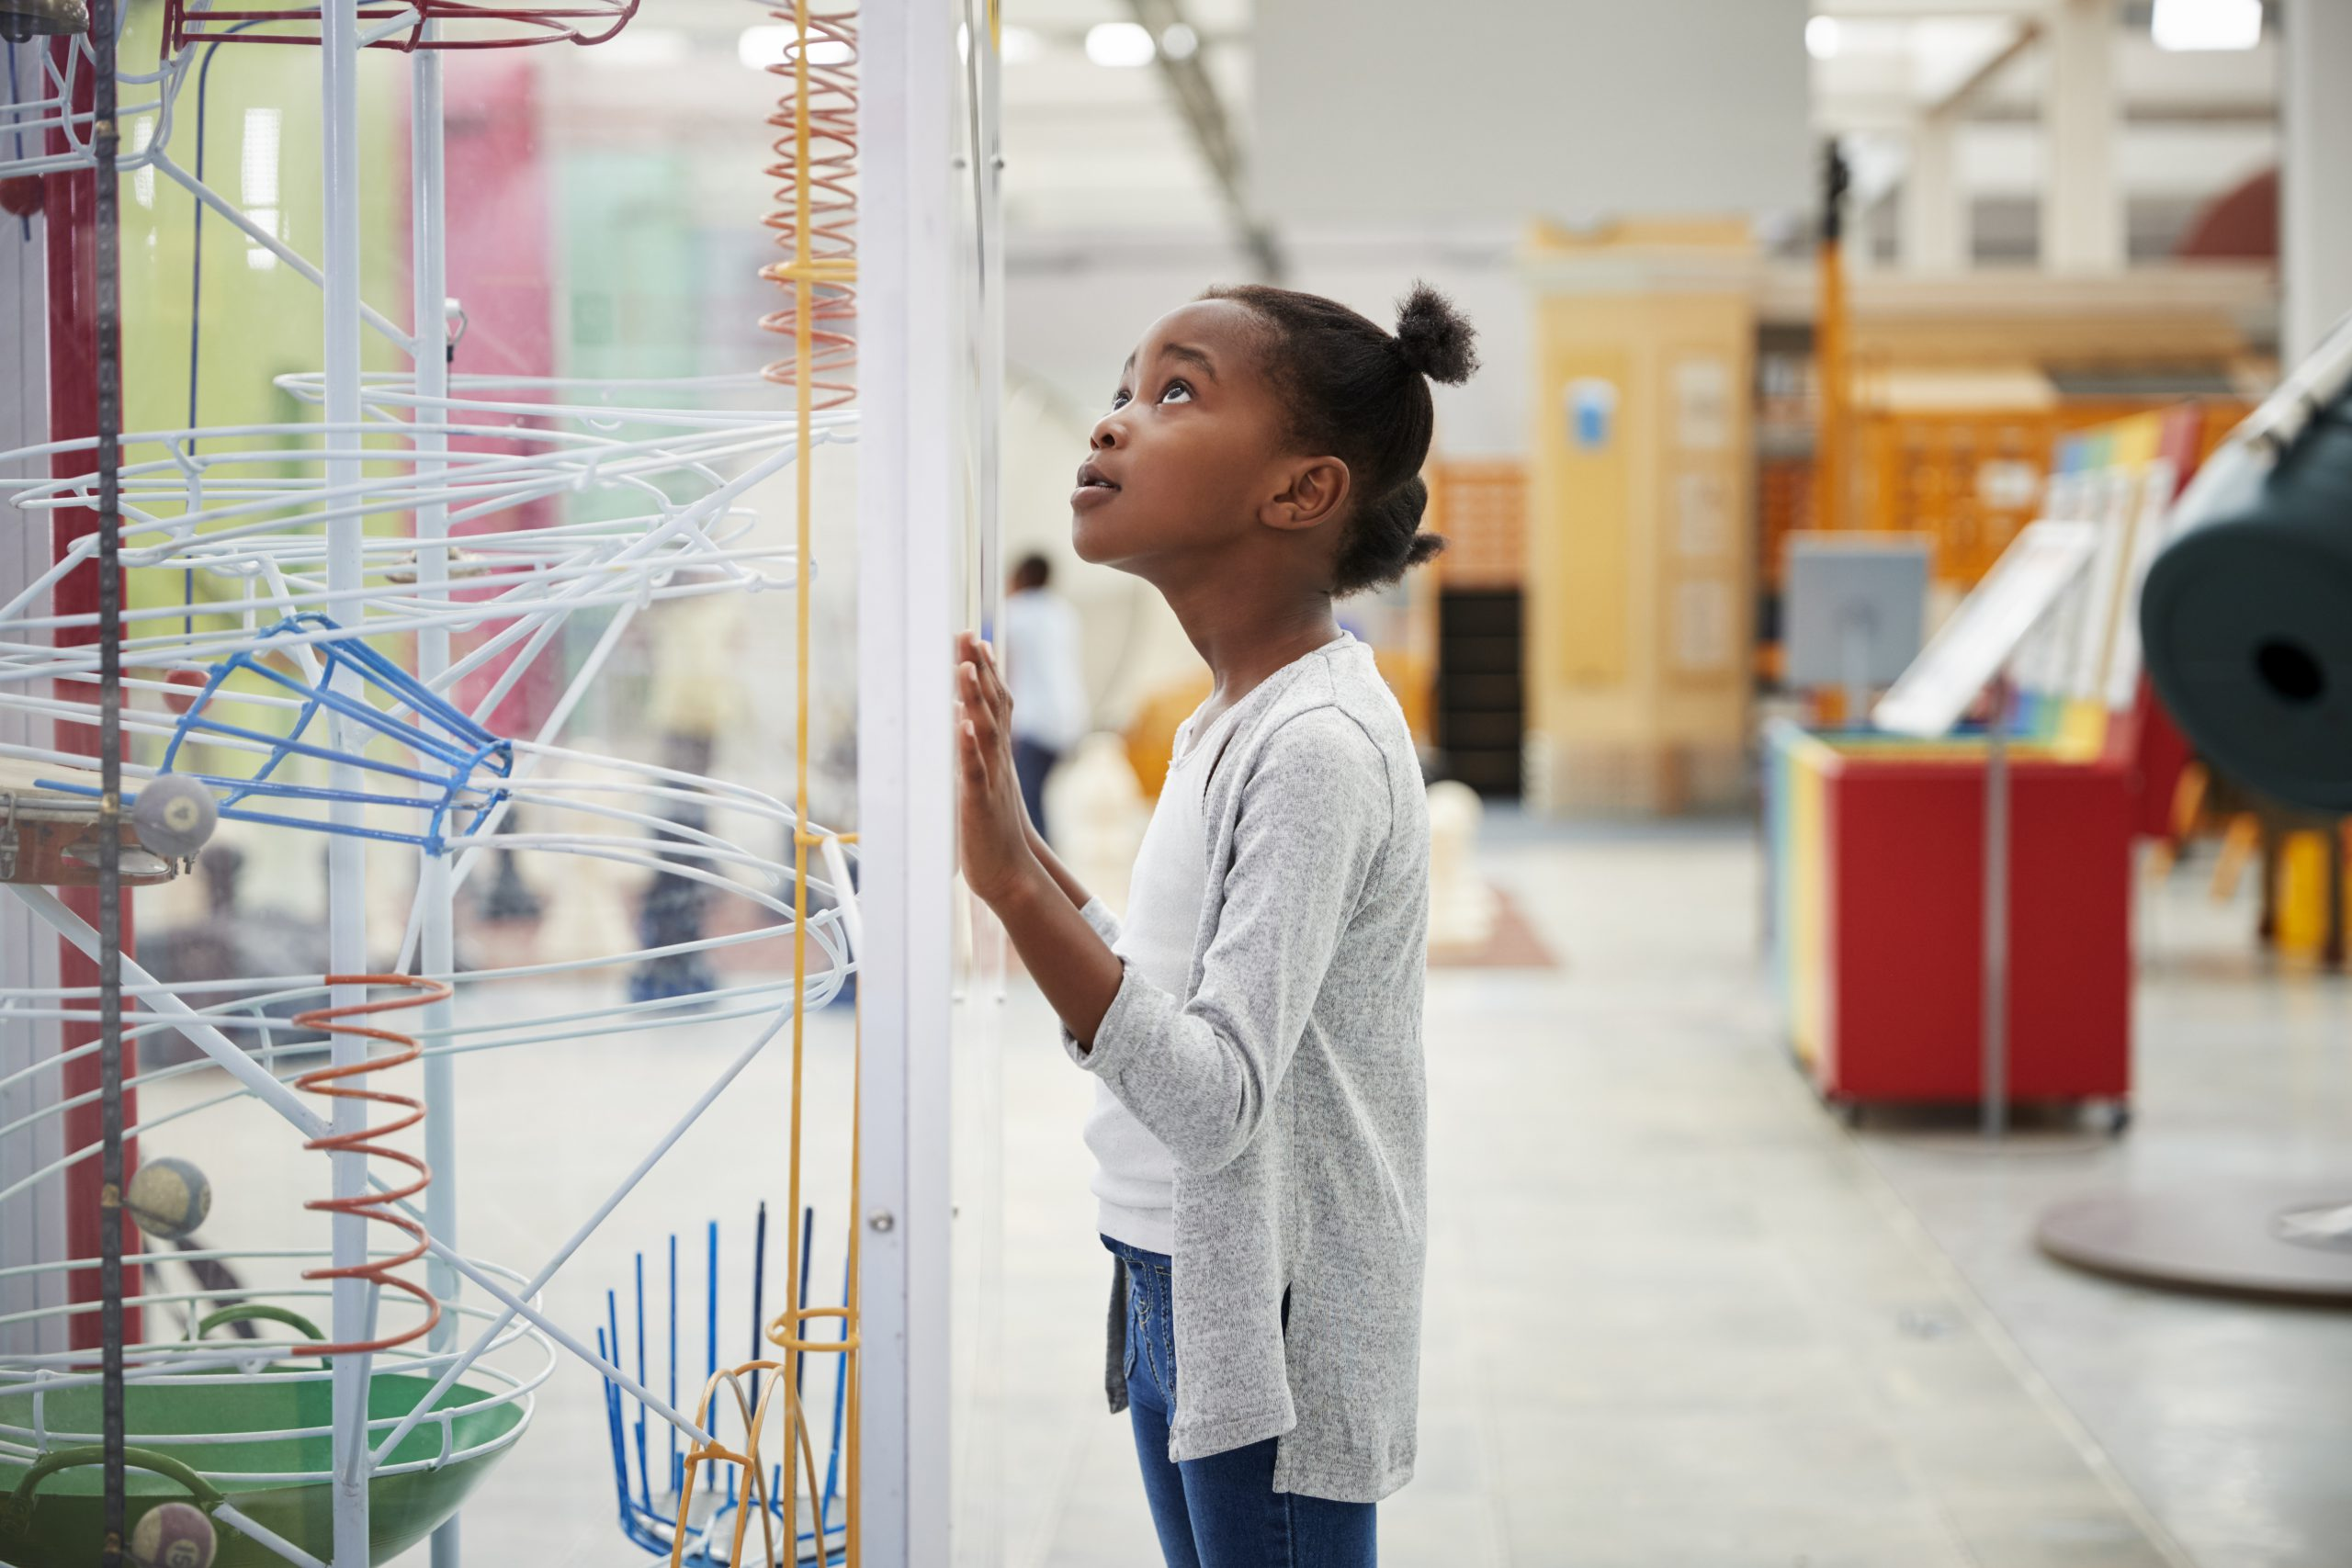 Child looking up at a clear cylindrical exhibit that contains spirals, strings, and other shapes in various colors.